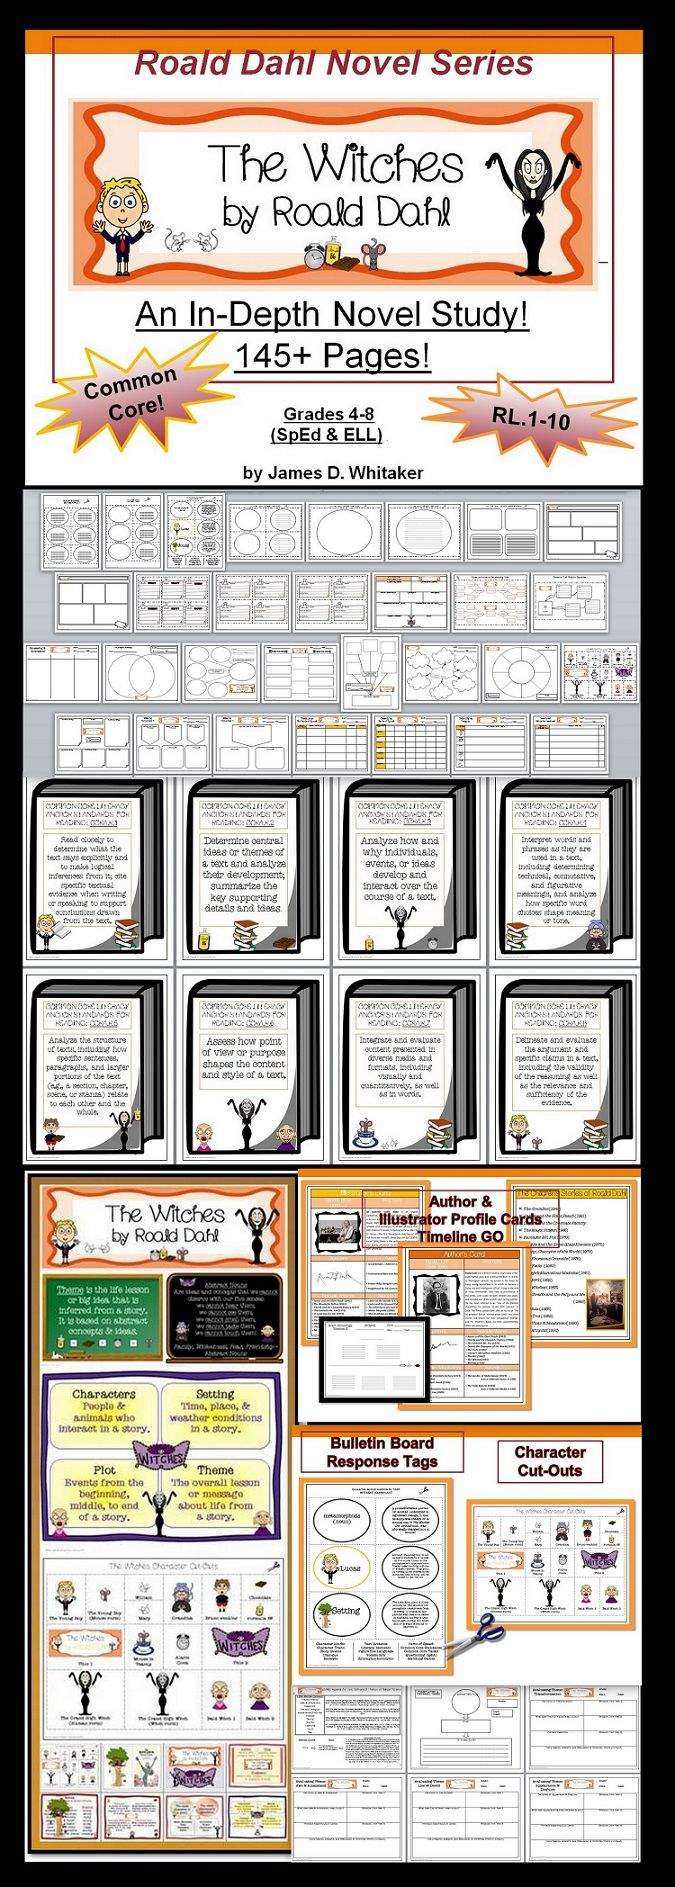 The Witches by Road Dahl Author Study -- 145+ Common Core Aligned Pages of Materials.